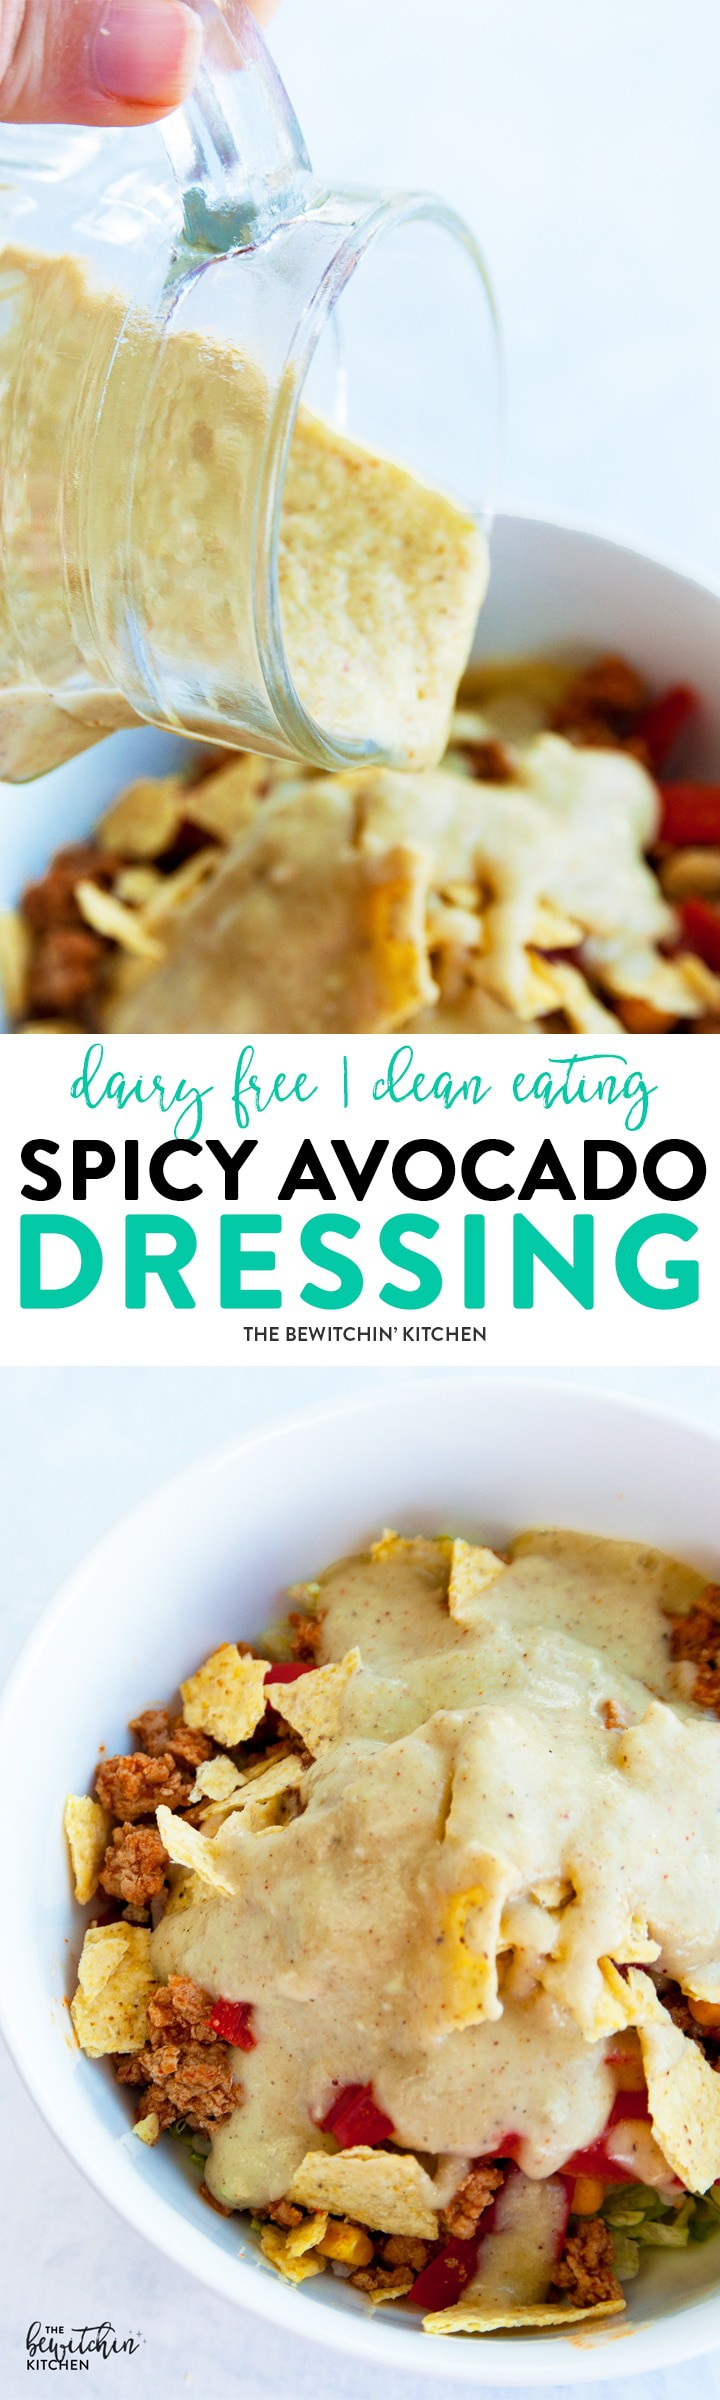 Spicy Avocado Dressing easy homemade salad dressing recipe that's creamy, yet dairy free. It makes a great fry dip too! Whole30, Paleo and 21 Day Fix approved!